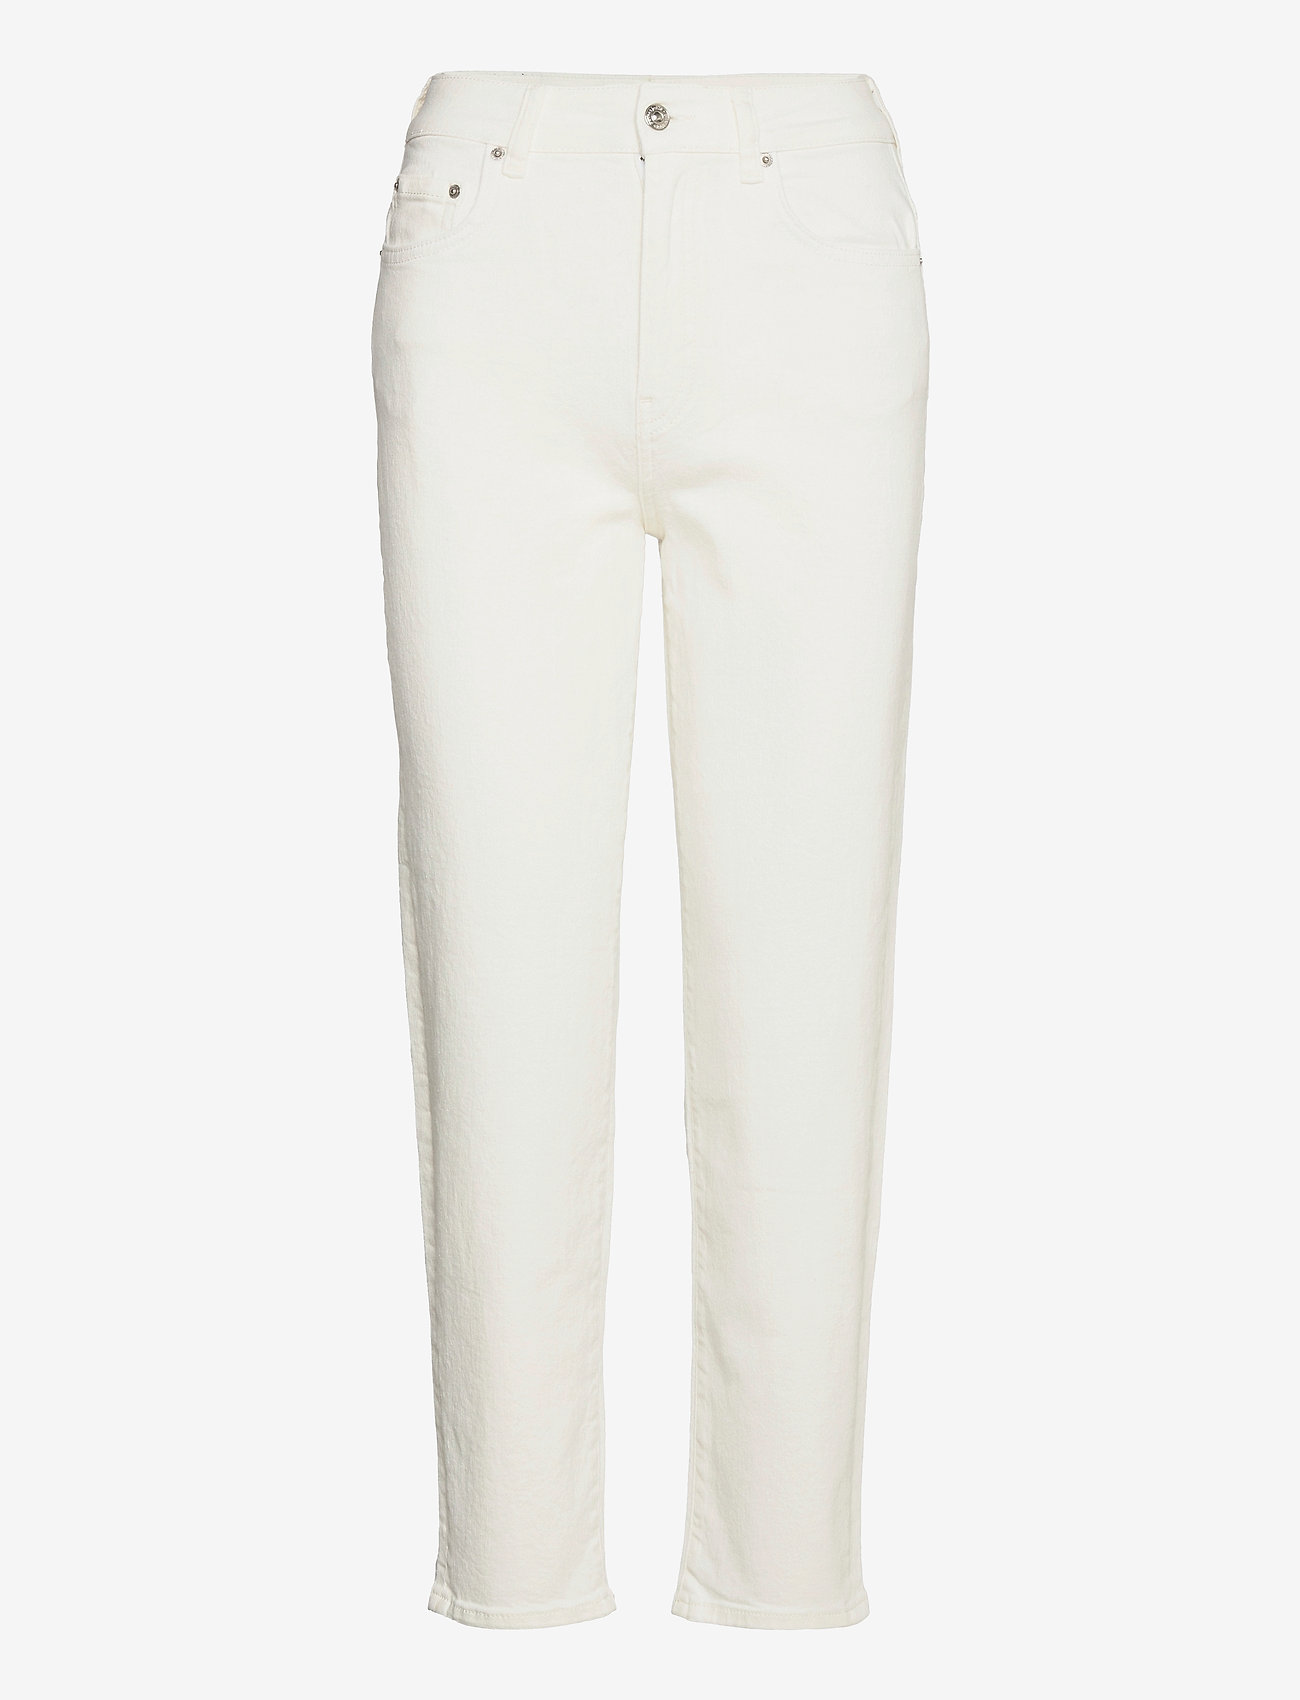 Gina Tricot - Comfy mom jeans - mammajeans - offwhite - 0